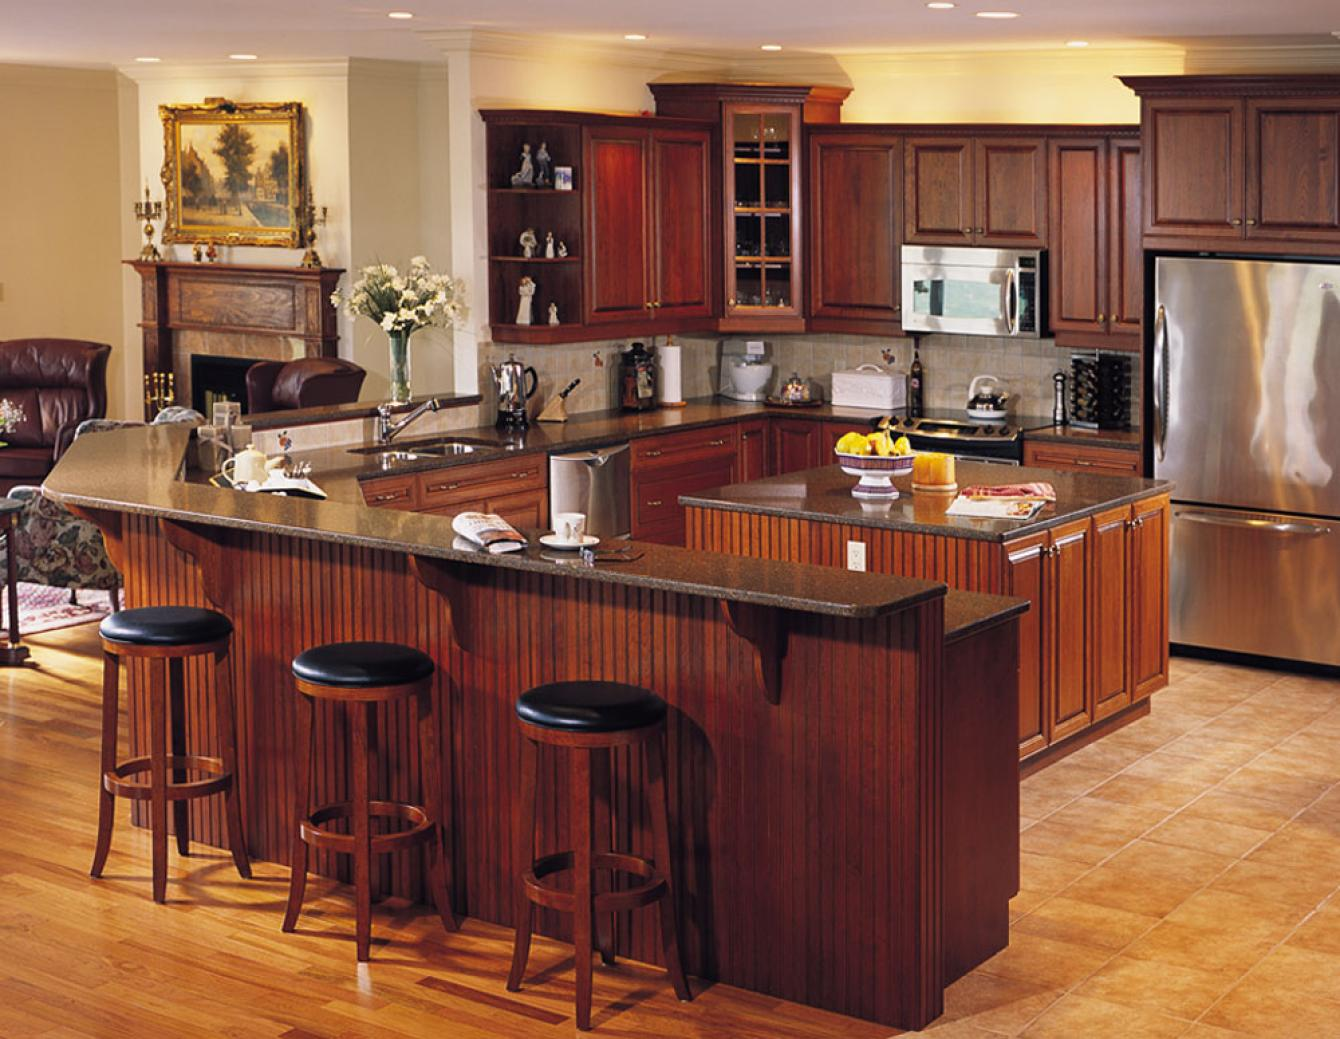 kitchens design gallery kitchen design gallery triangle kitchen 946